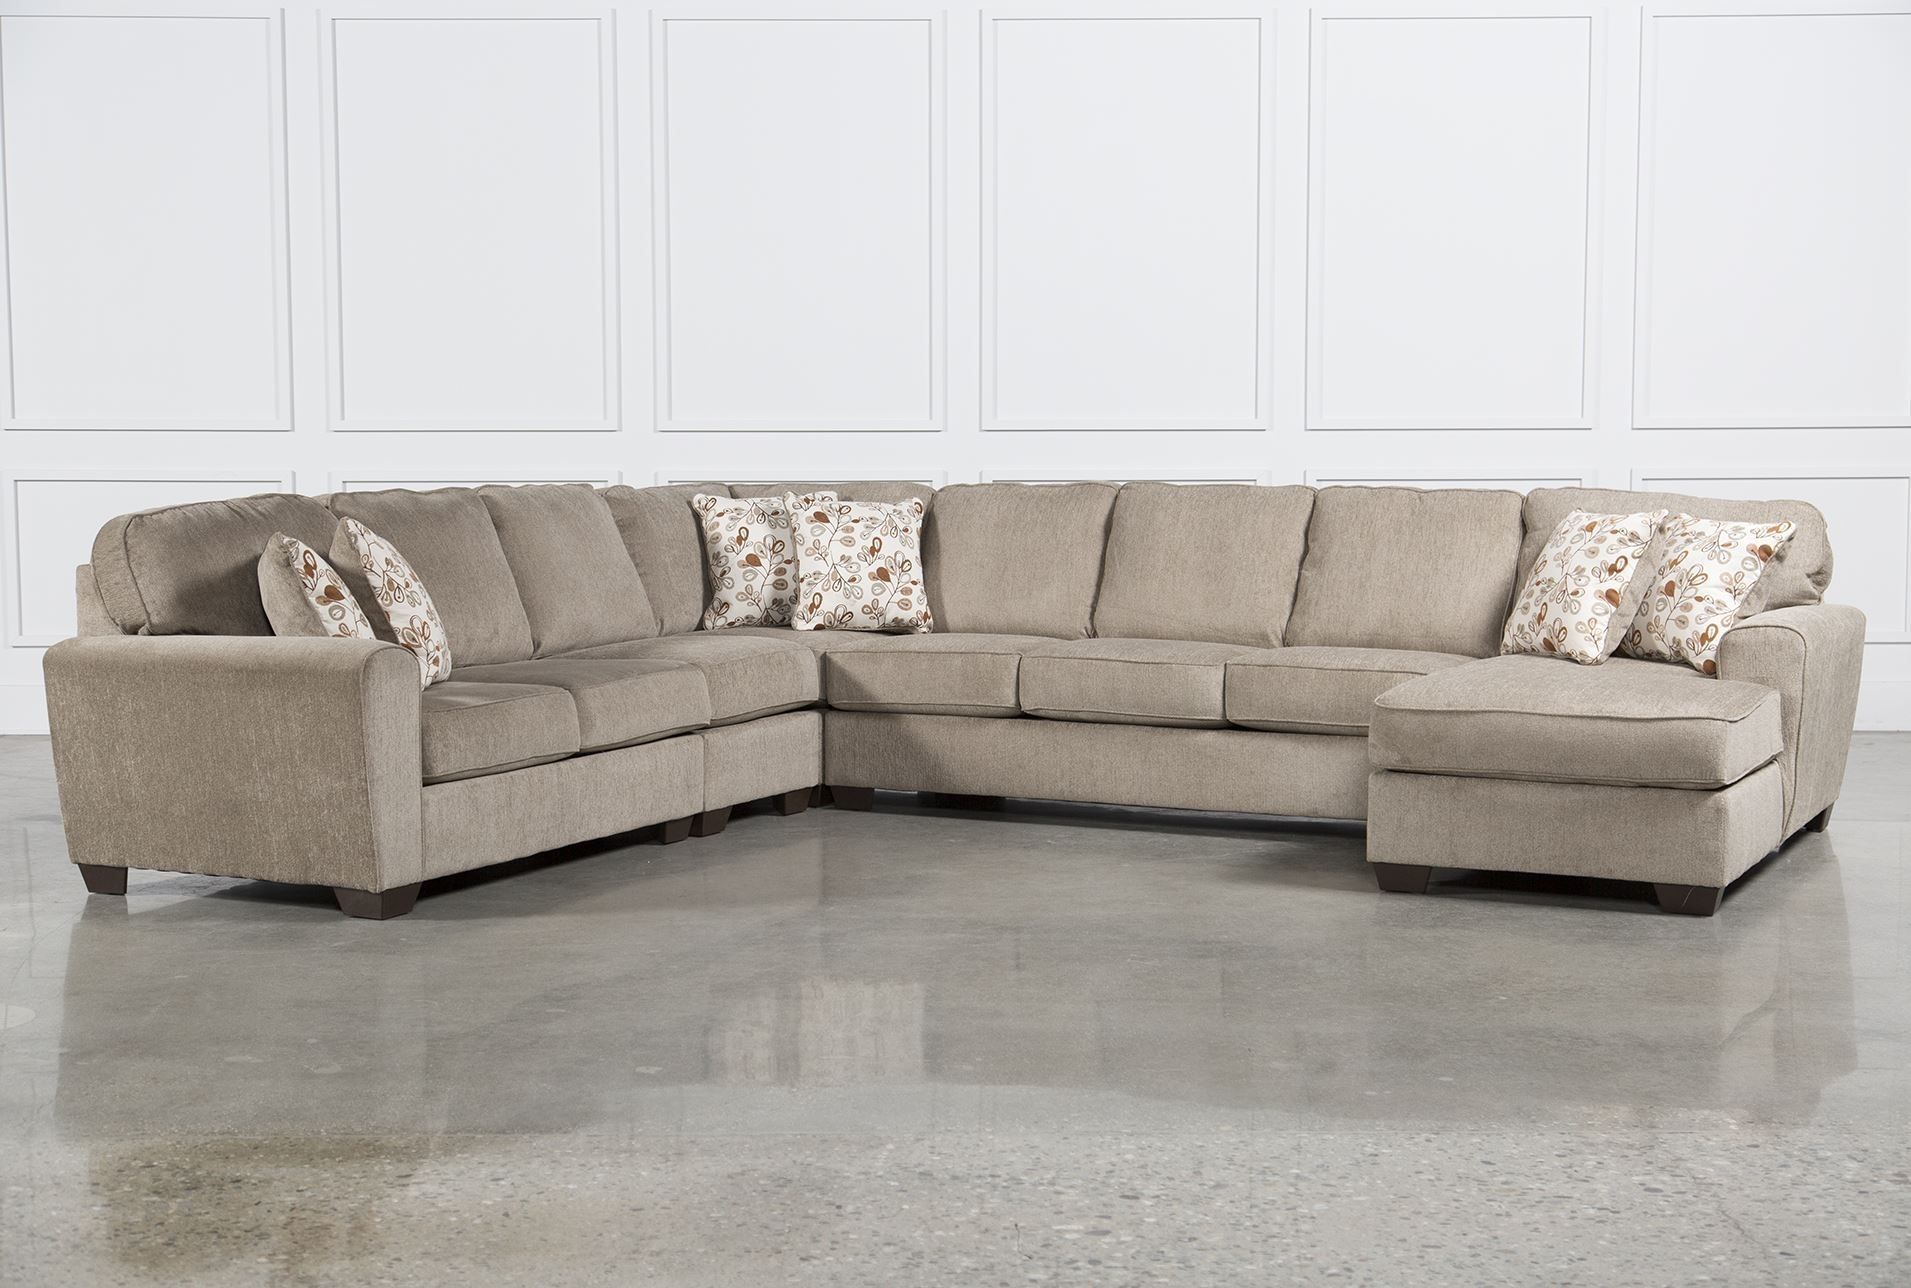 Best Ideas Of Raf Chaise In Patola Park 5 Piece Sectional W Raf within Norfolk Chocolate 3 Piece Sectionals With Raf Chaise (Image 3 of 30)